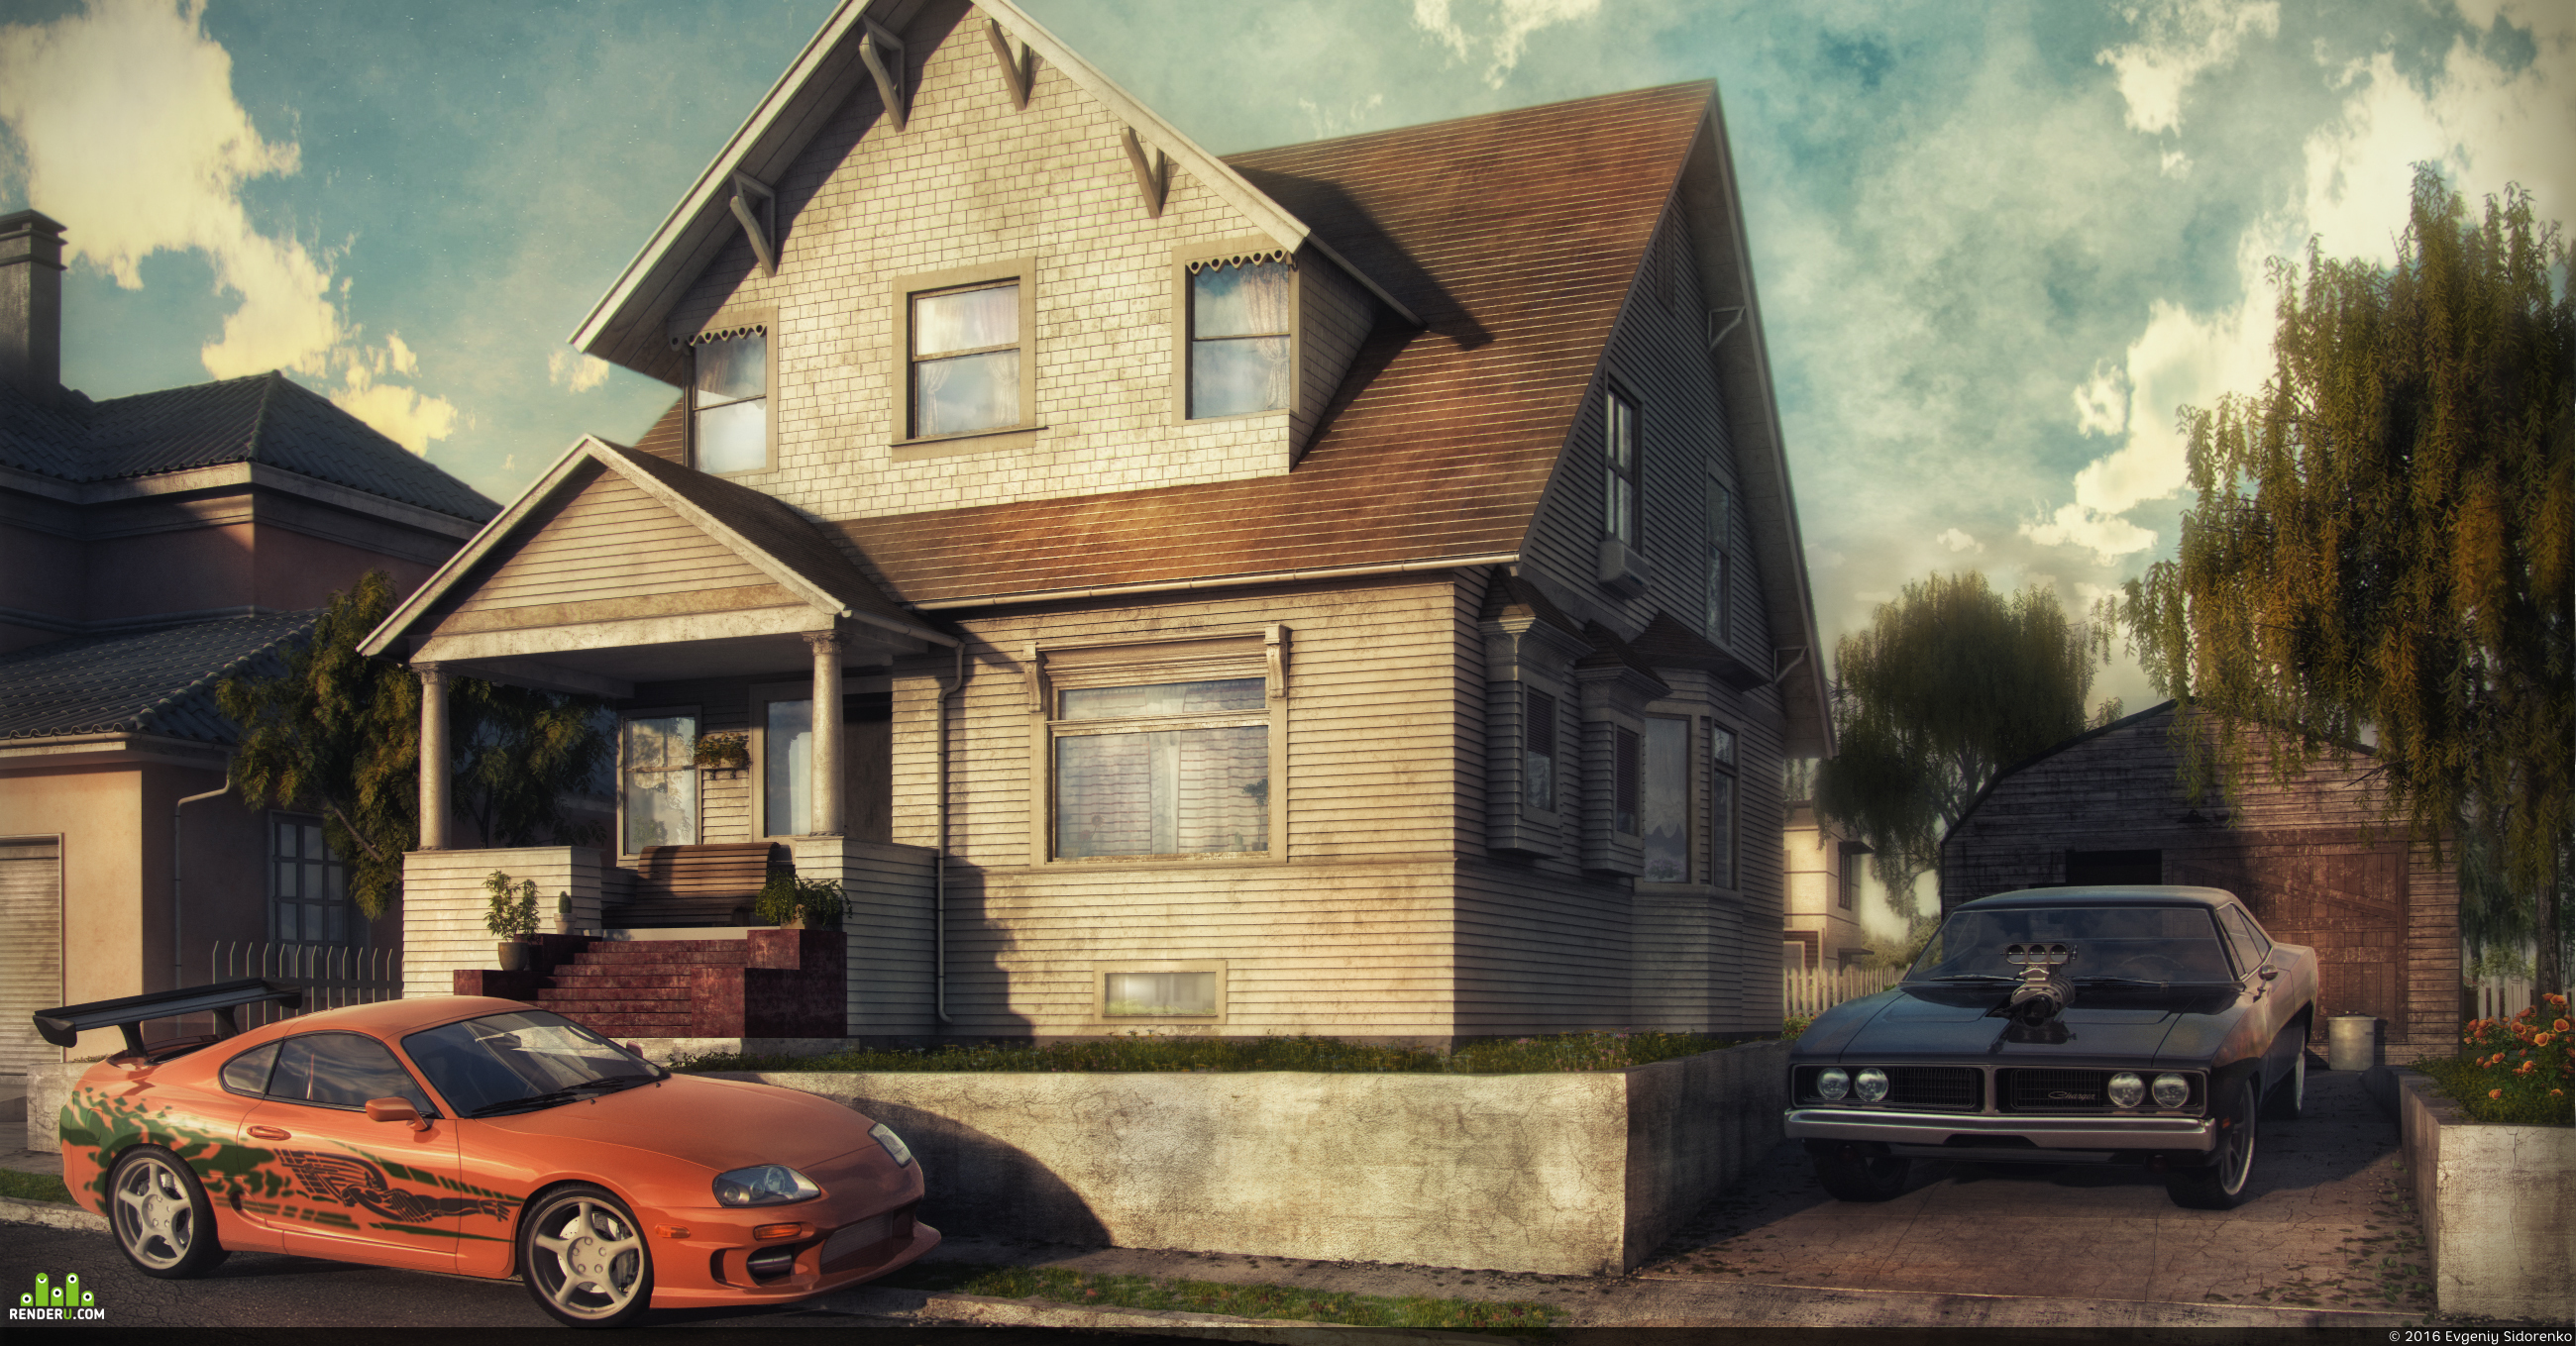 preview Toretto's house (The Fast and the Furious)